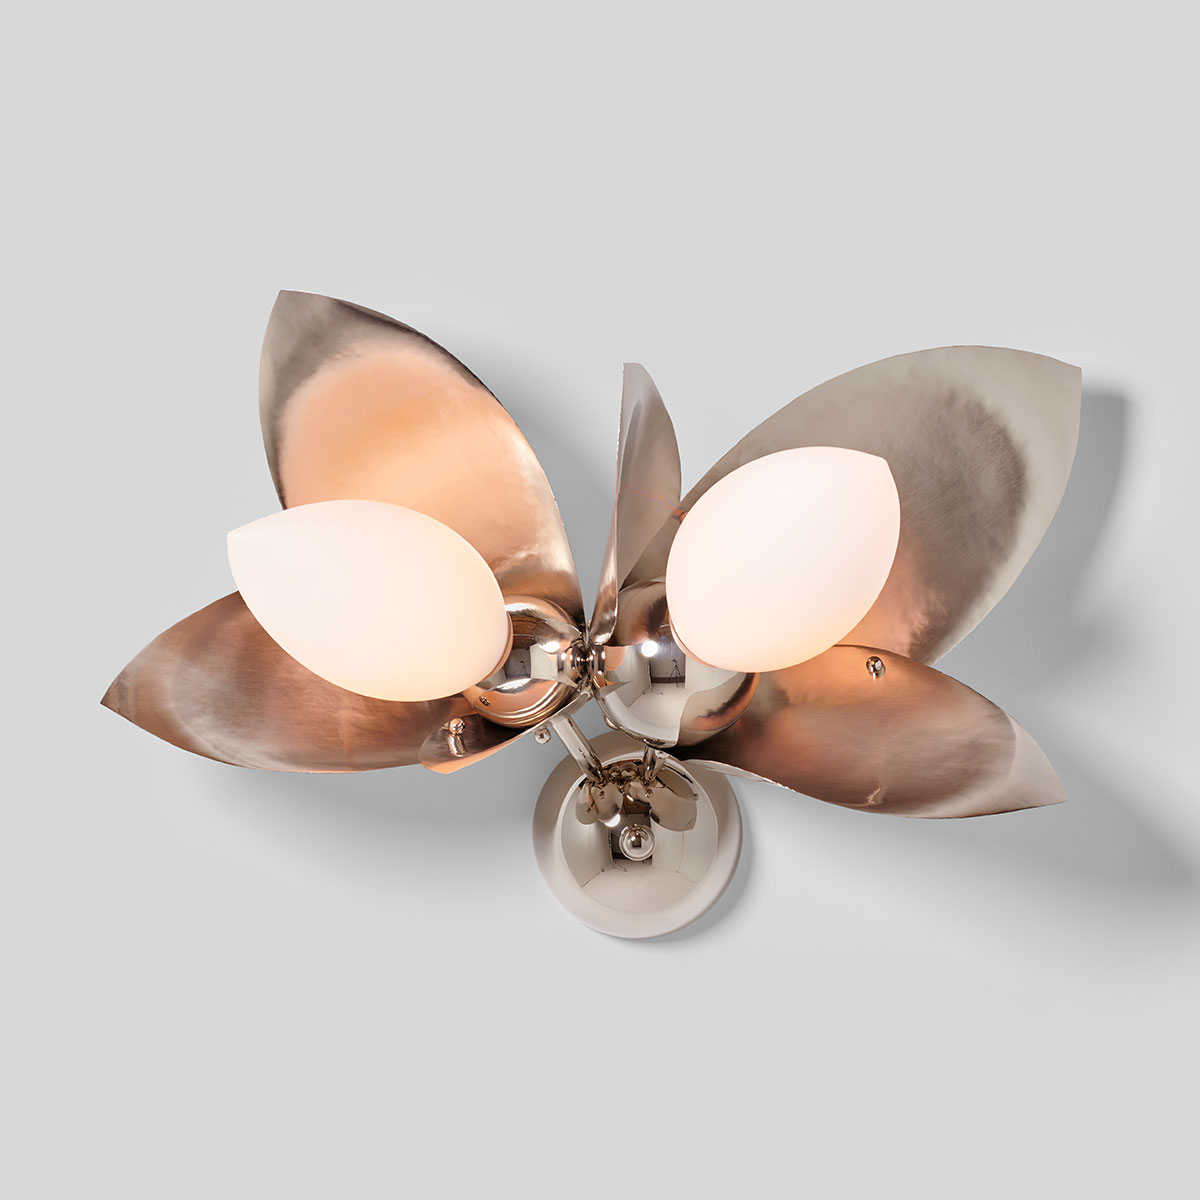 LAUREL BLOSSOM 02-LIGHT SCONCE    See Blossom series